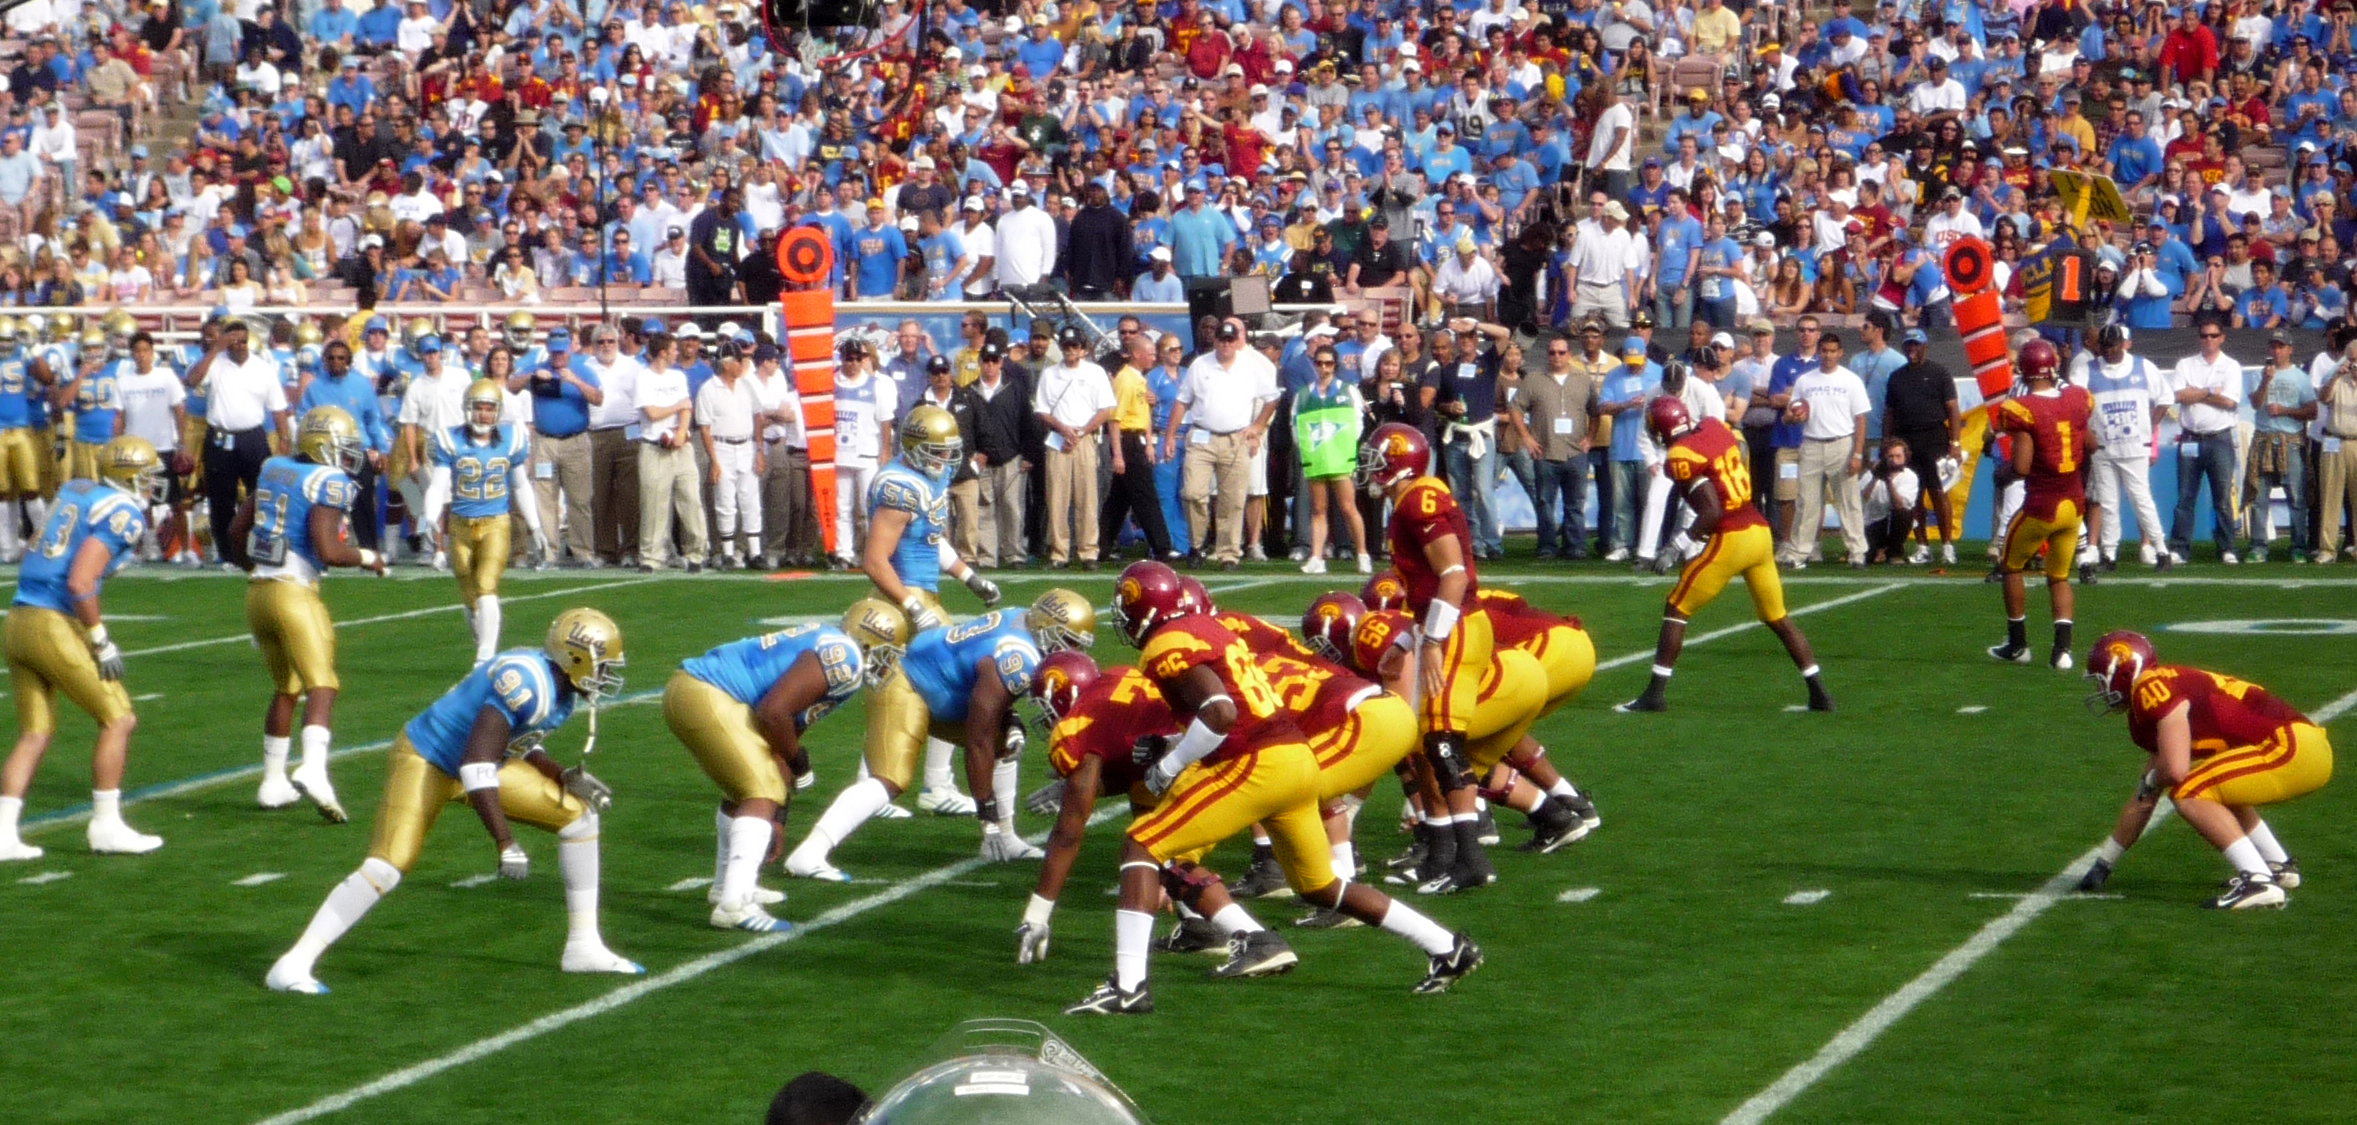 2008-1206-USC-UCLA-007-RB-redblue1.JPG